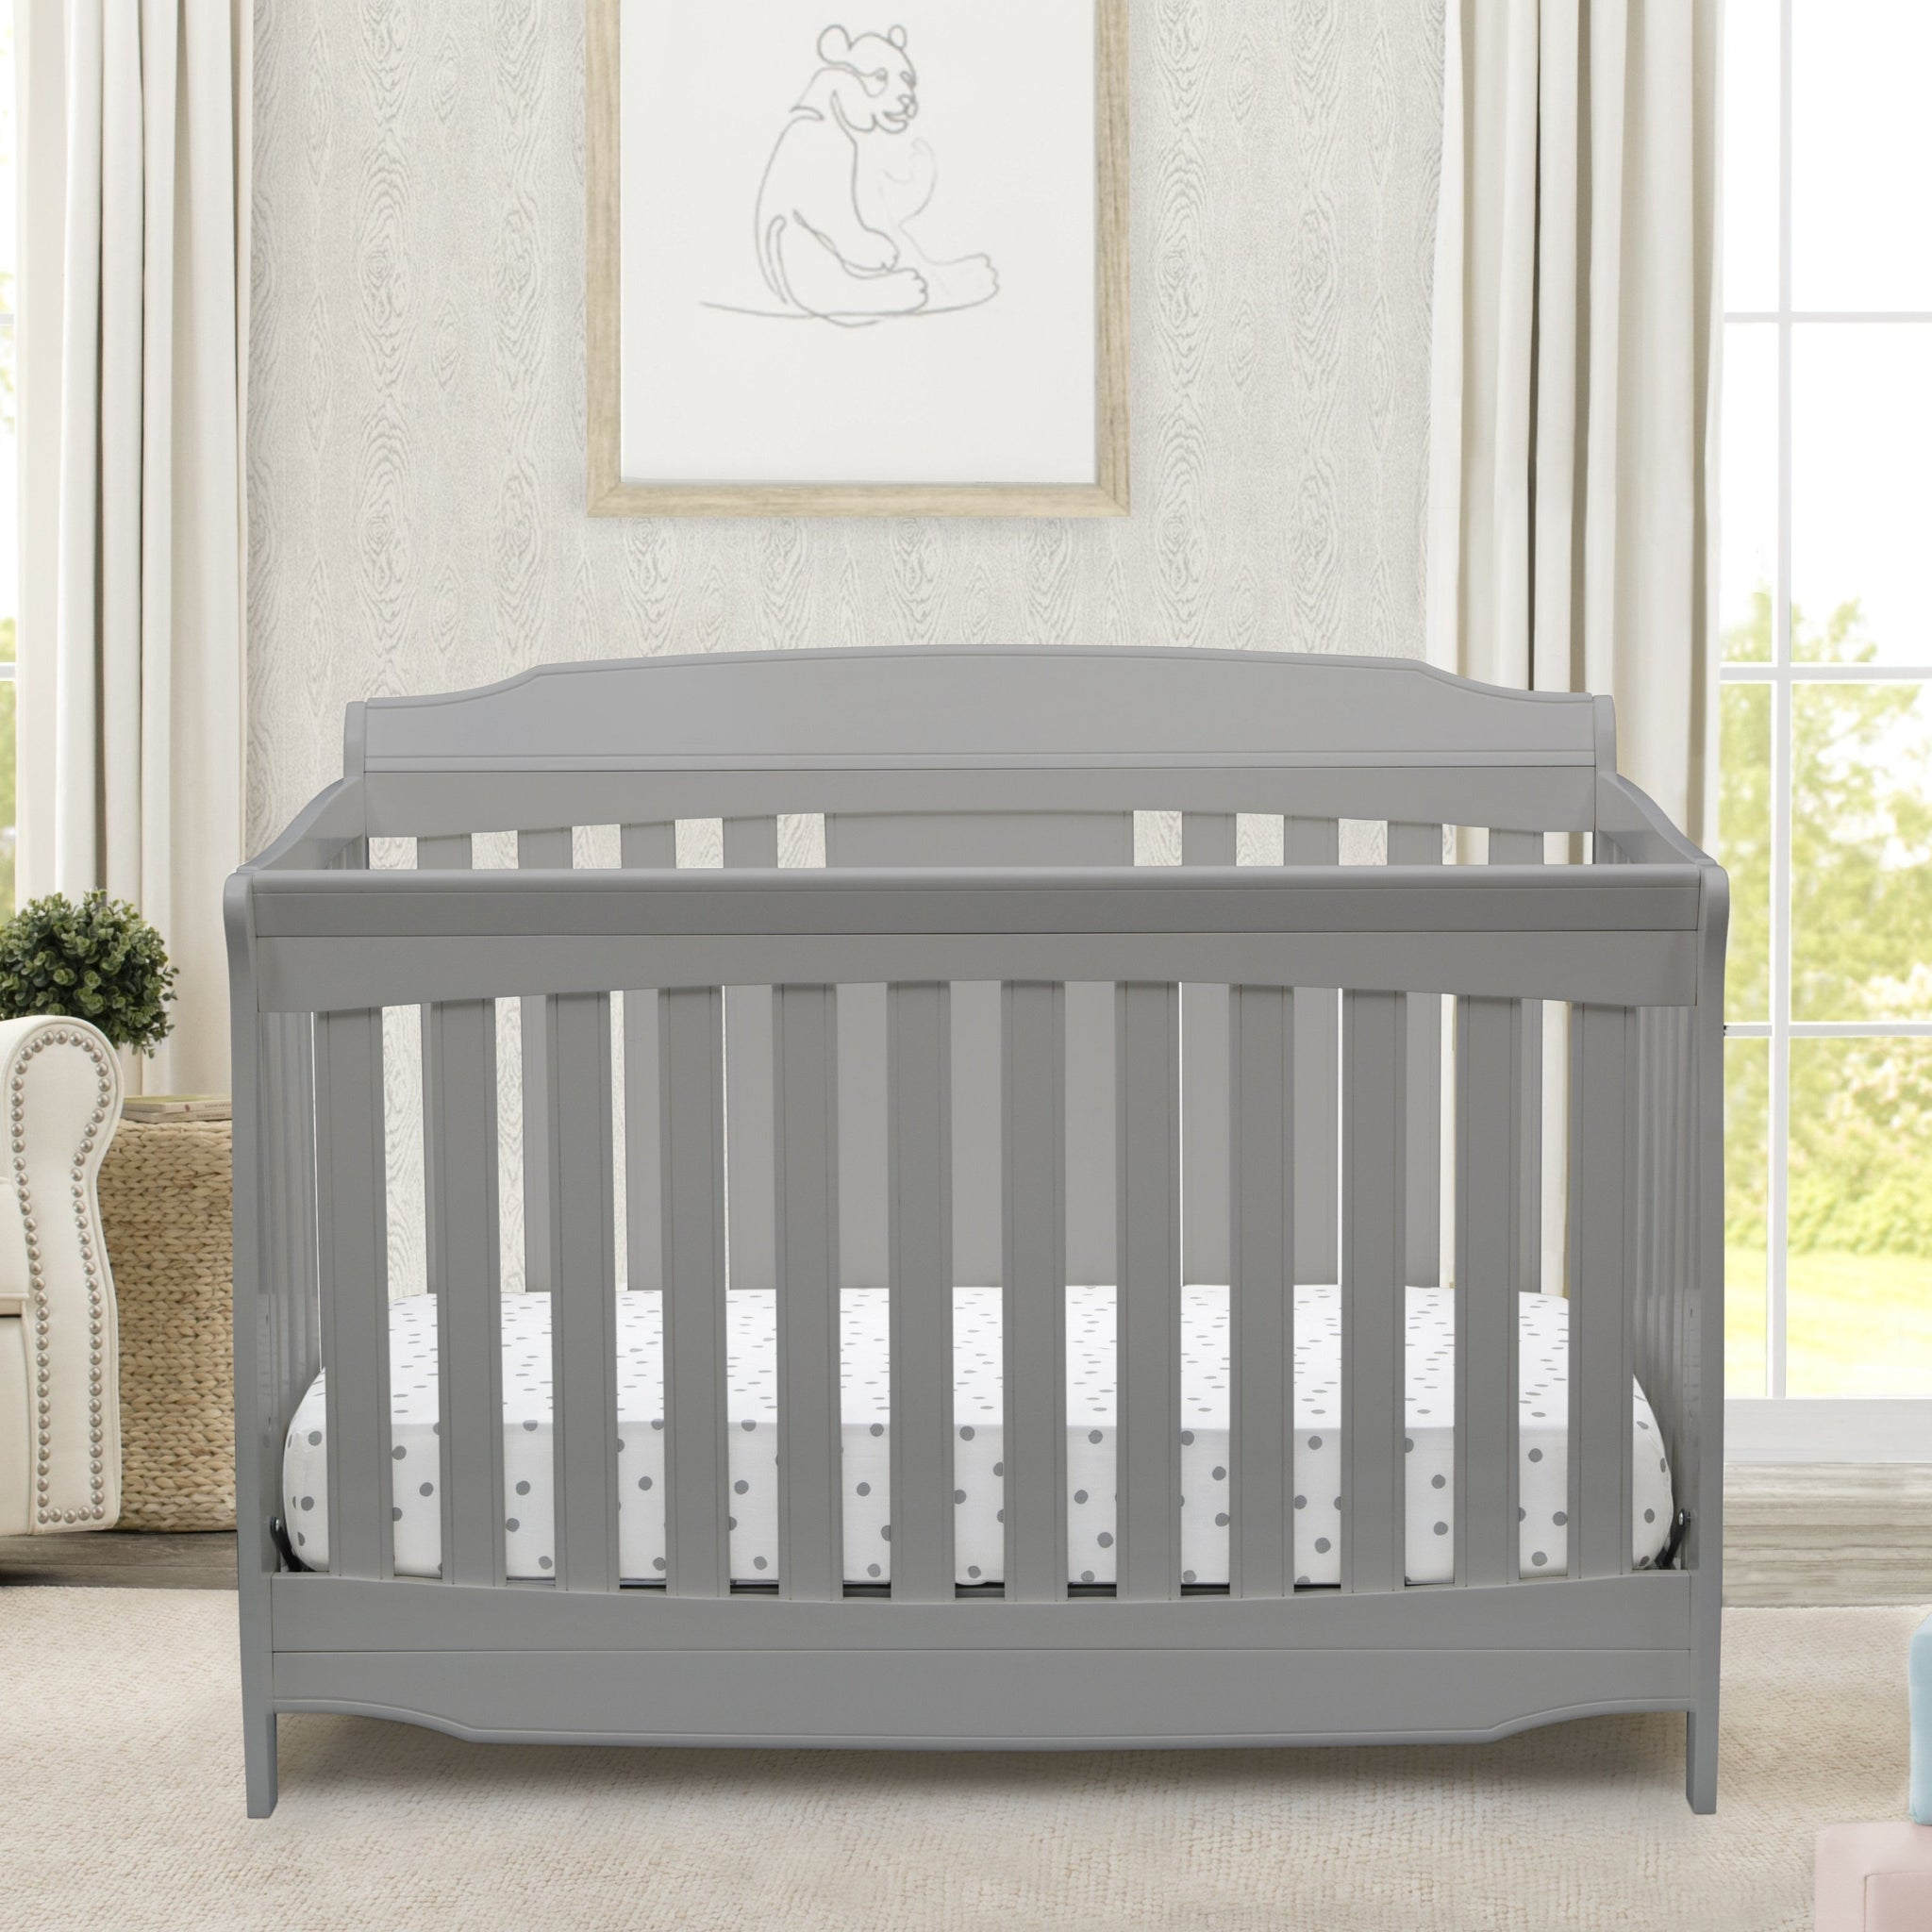 Westminster 6-in-1 Convertible Crib